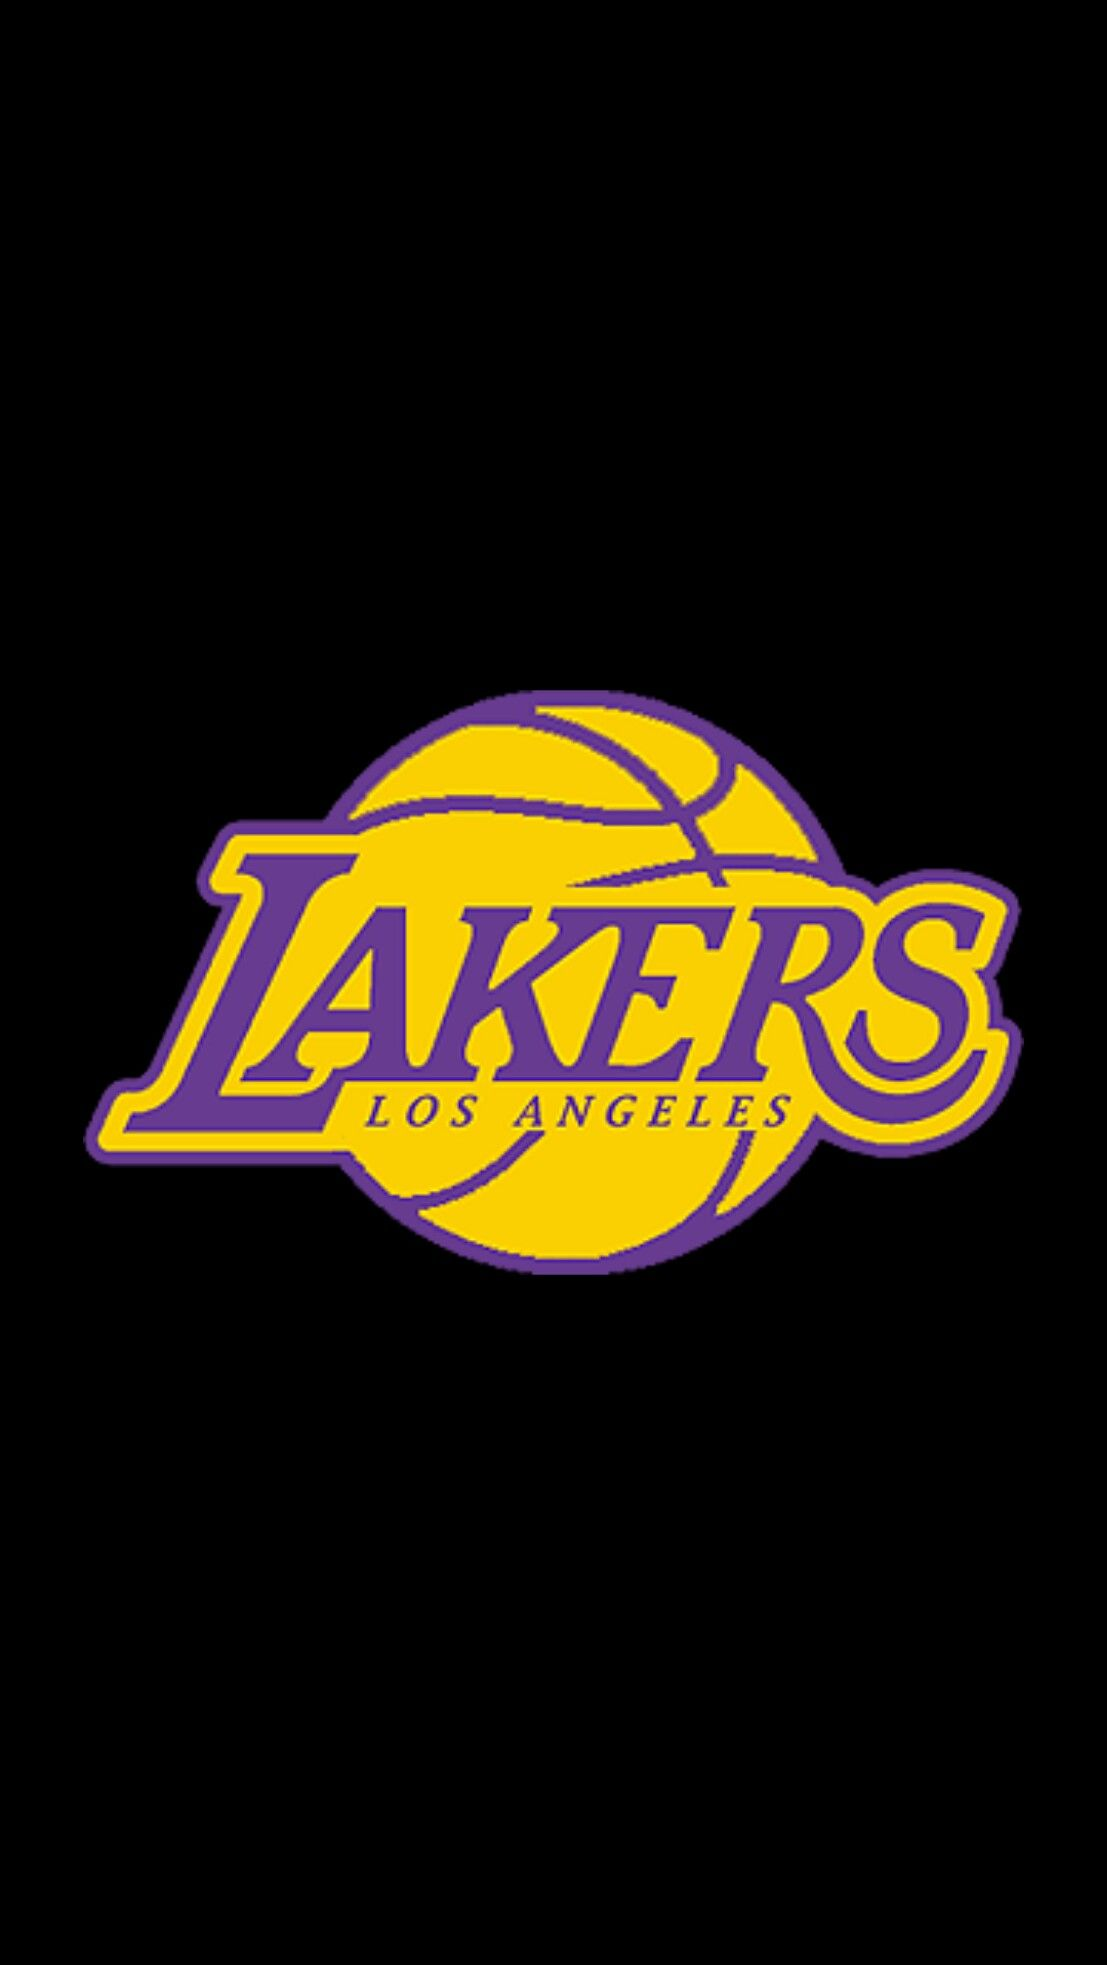 nba wallpaper iphone android Lakers wallpaper, Funny